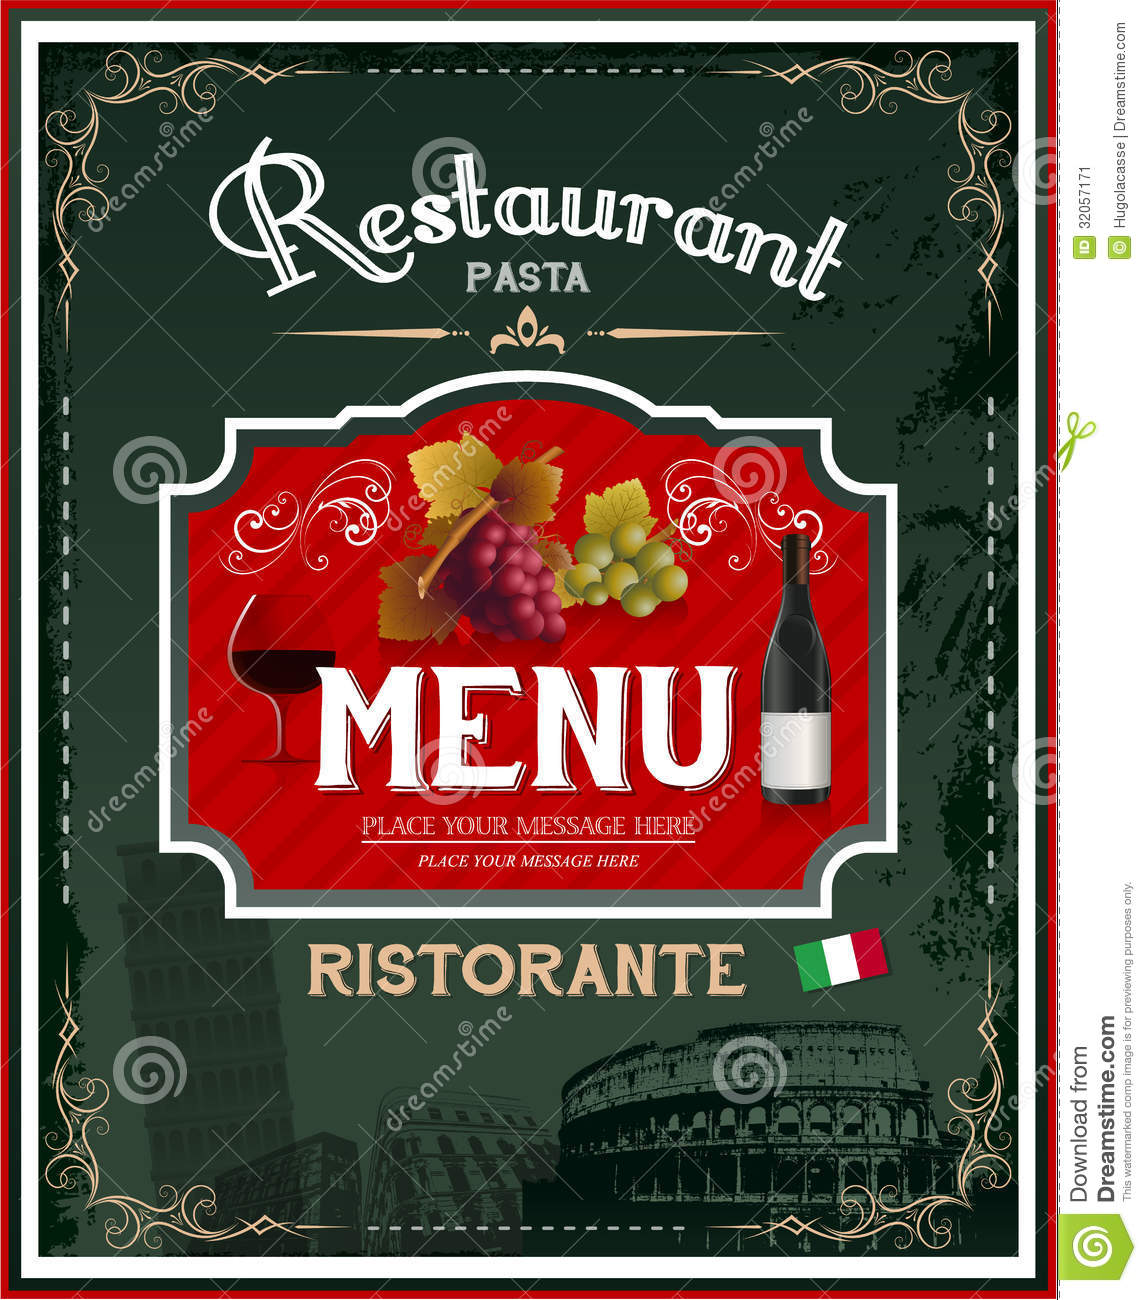 Vintage Italian Restaurant Menu And Poster Design Stock Vector